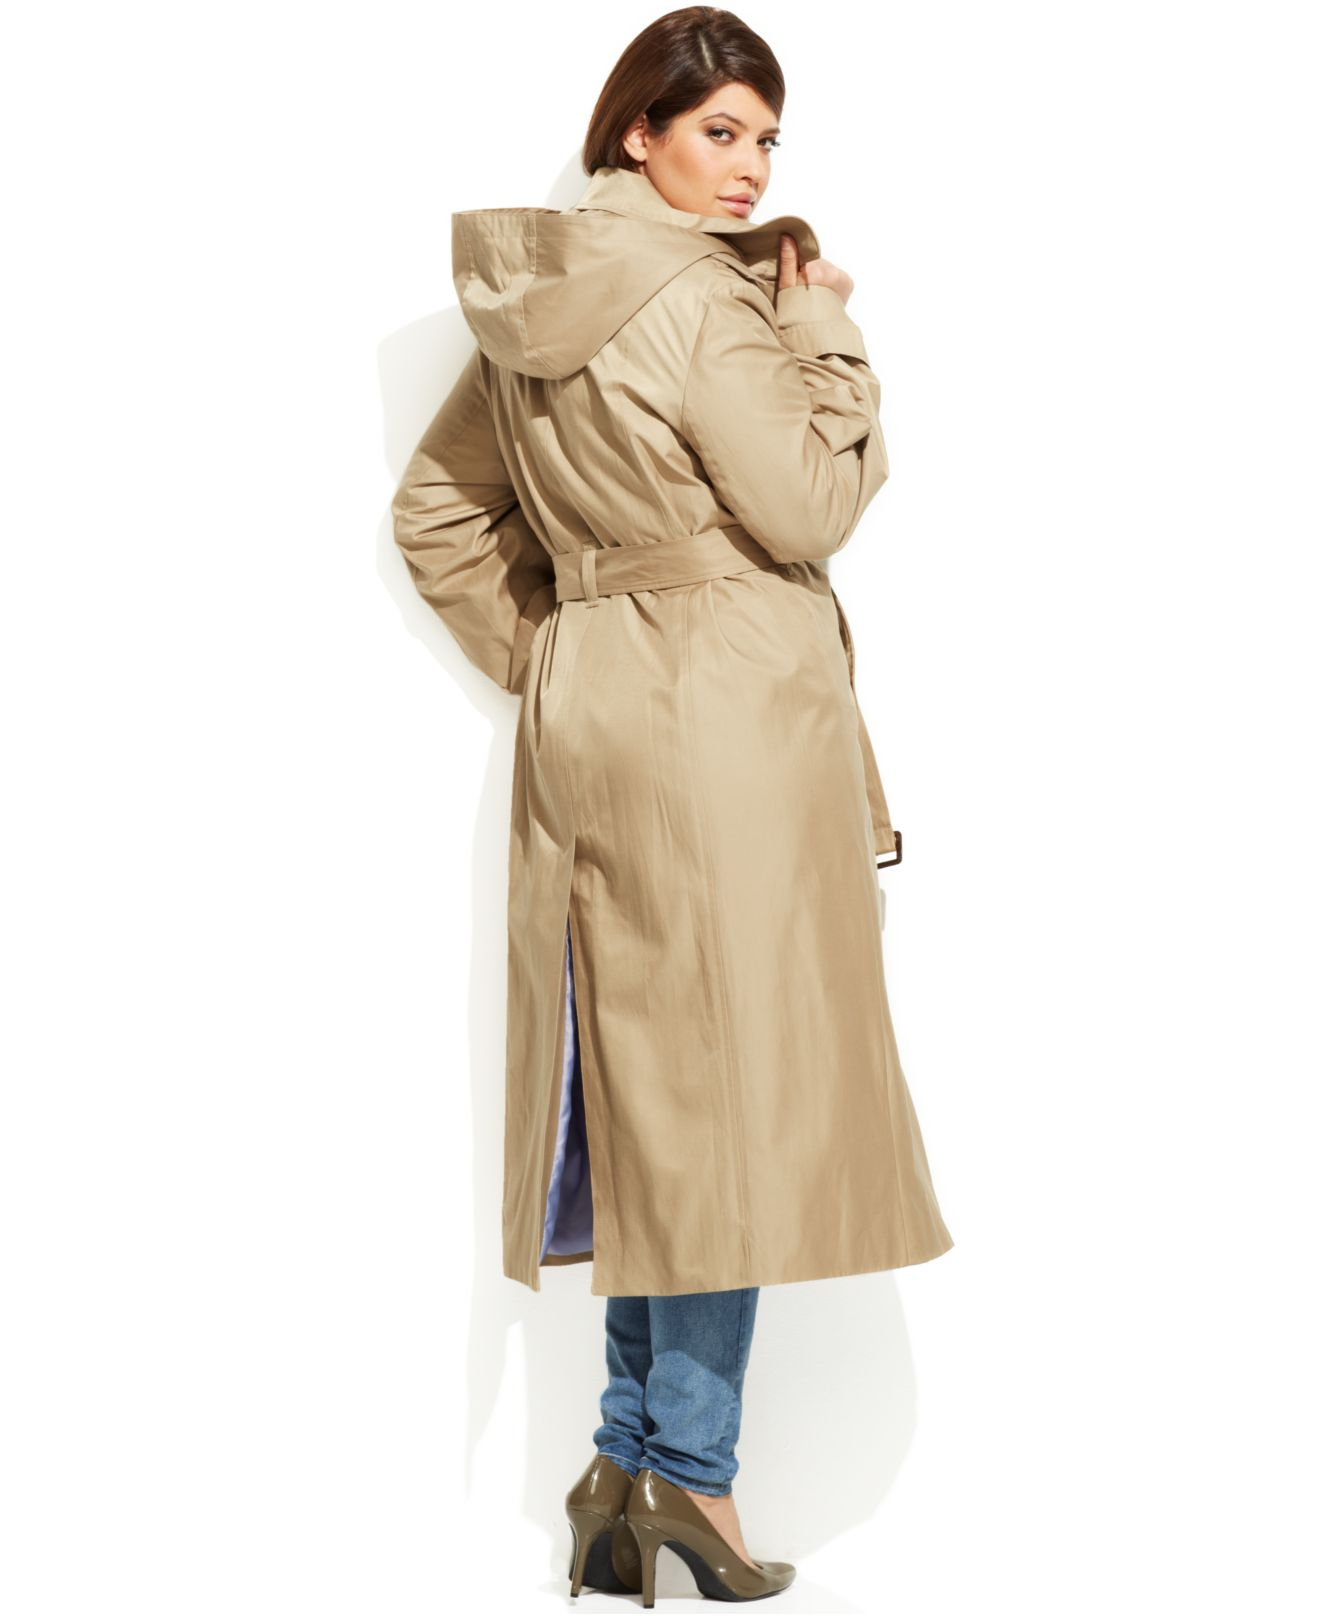 bc15699d940e8 Lyst - London Fog Plus Size Hooded Belted Maxi Trench Coat in Natural